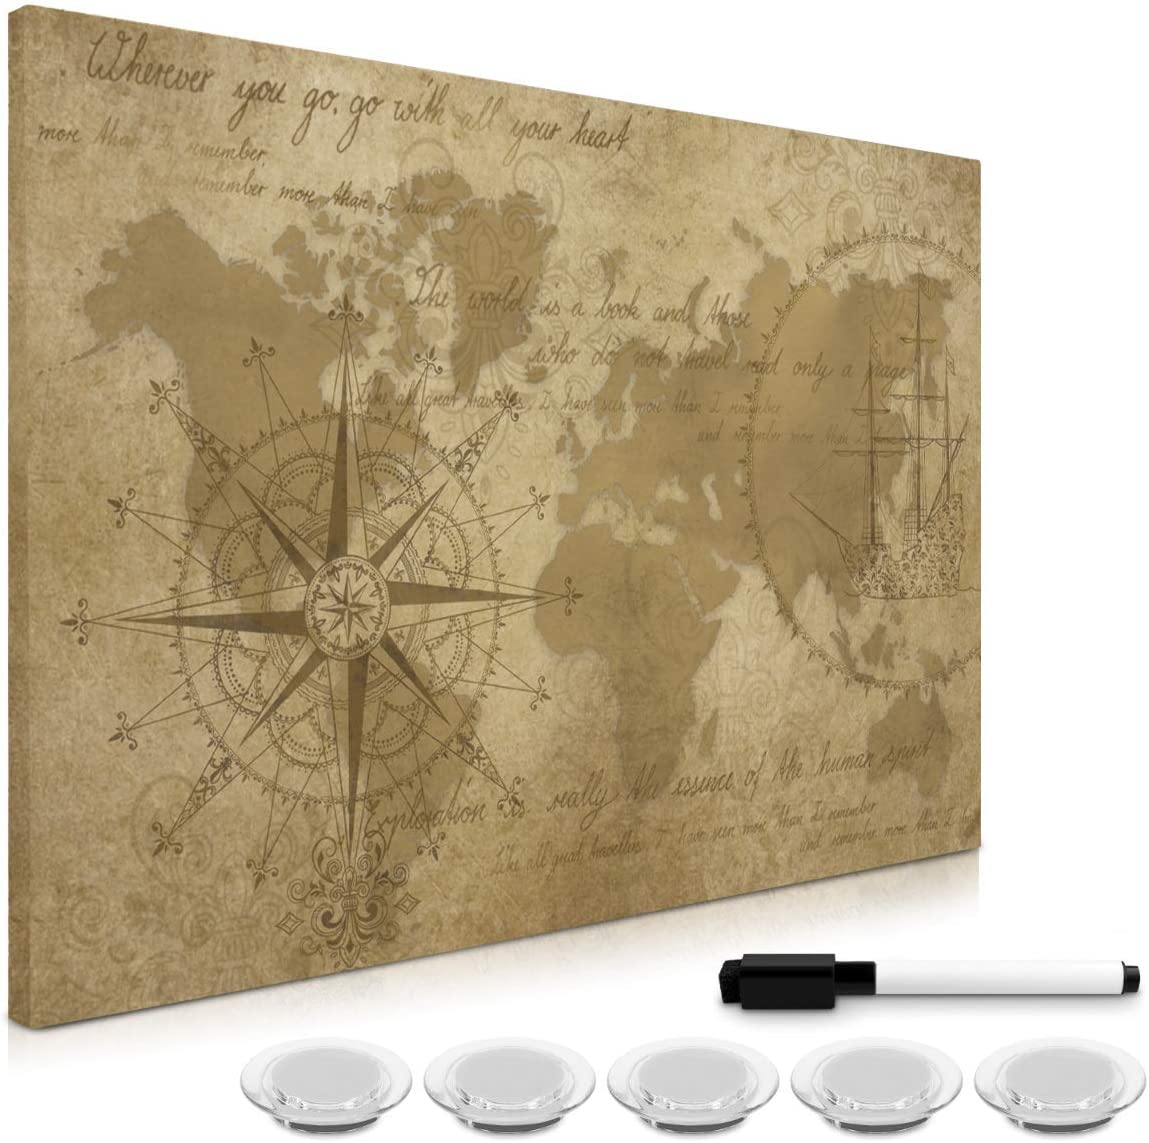 Navaris Magnetic Dry Erase Board - 16 x 24 inches Decorative White Board for Wall with Design, Includes 5 Magnets and Marker - Antique World Map